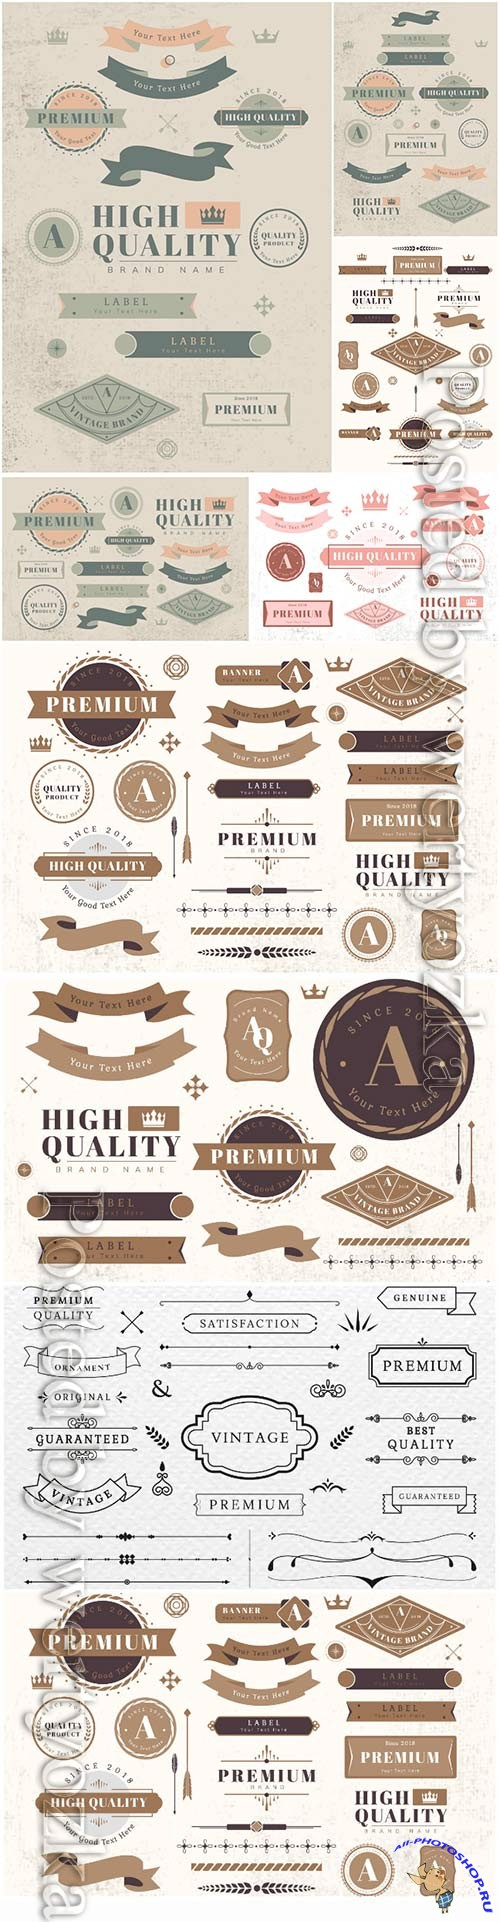 Vintage labels and badges decorative vector elements